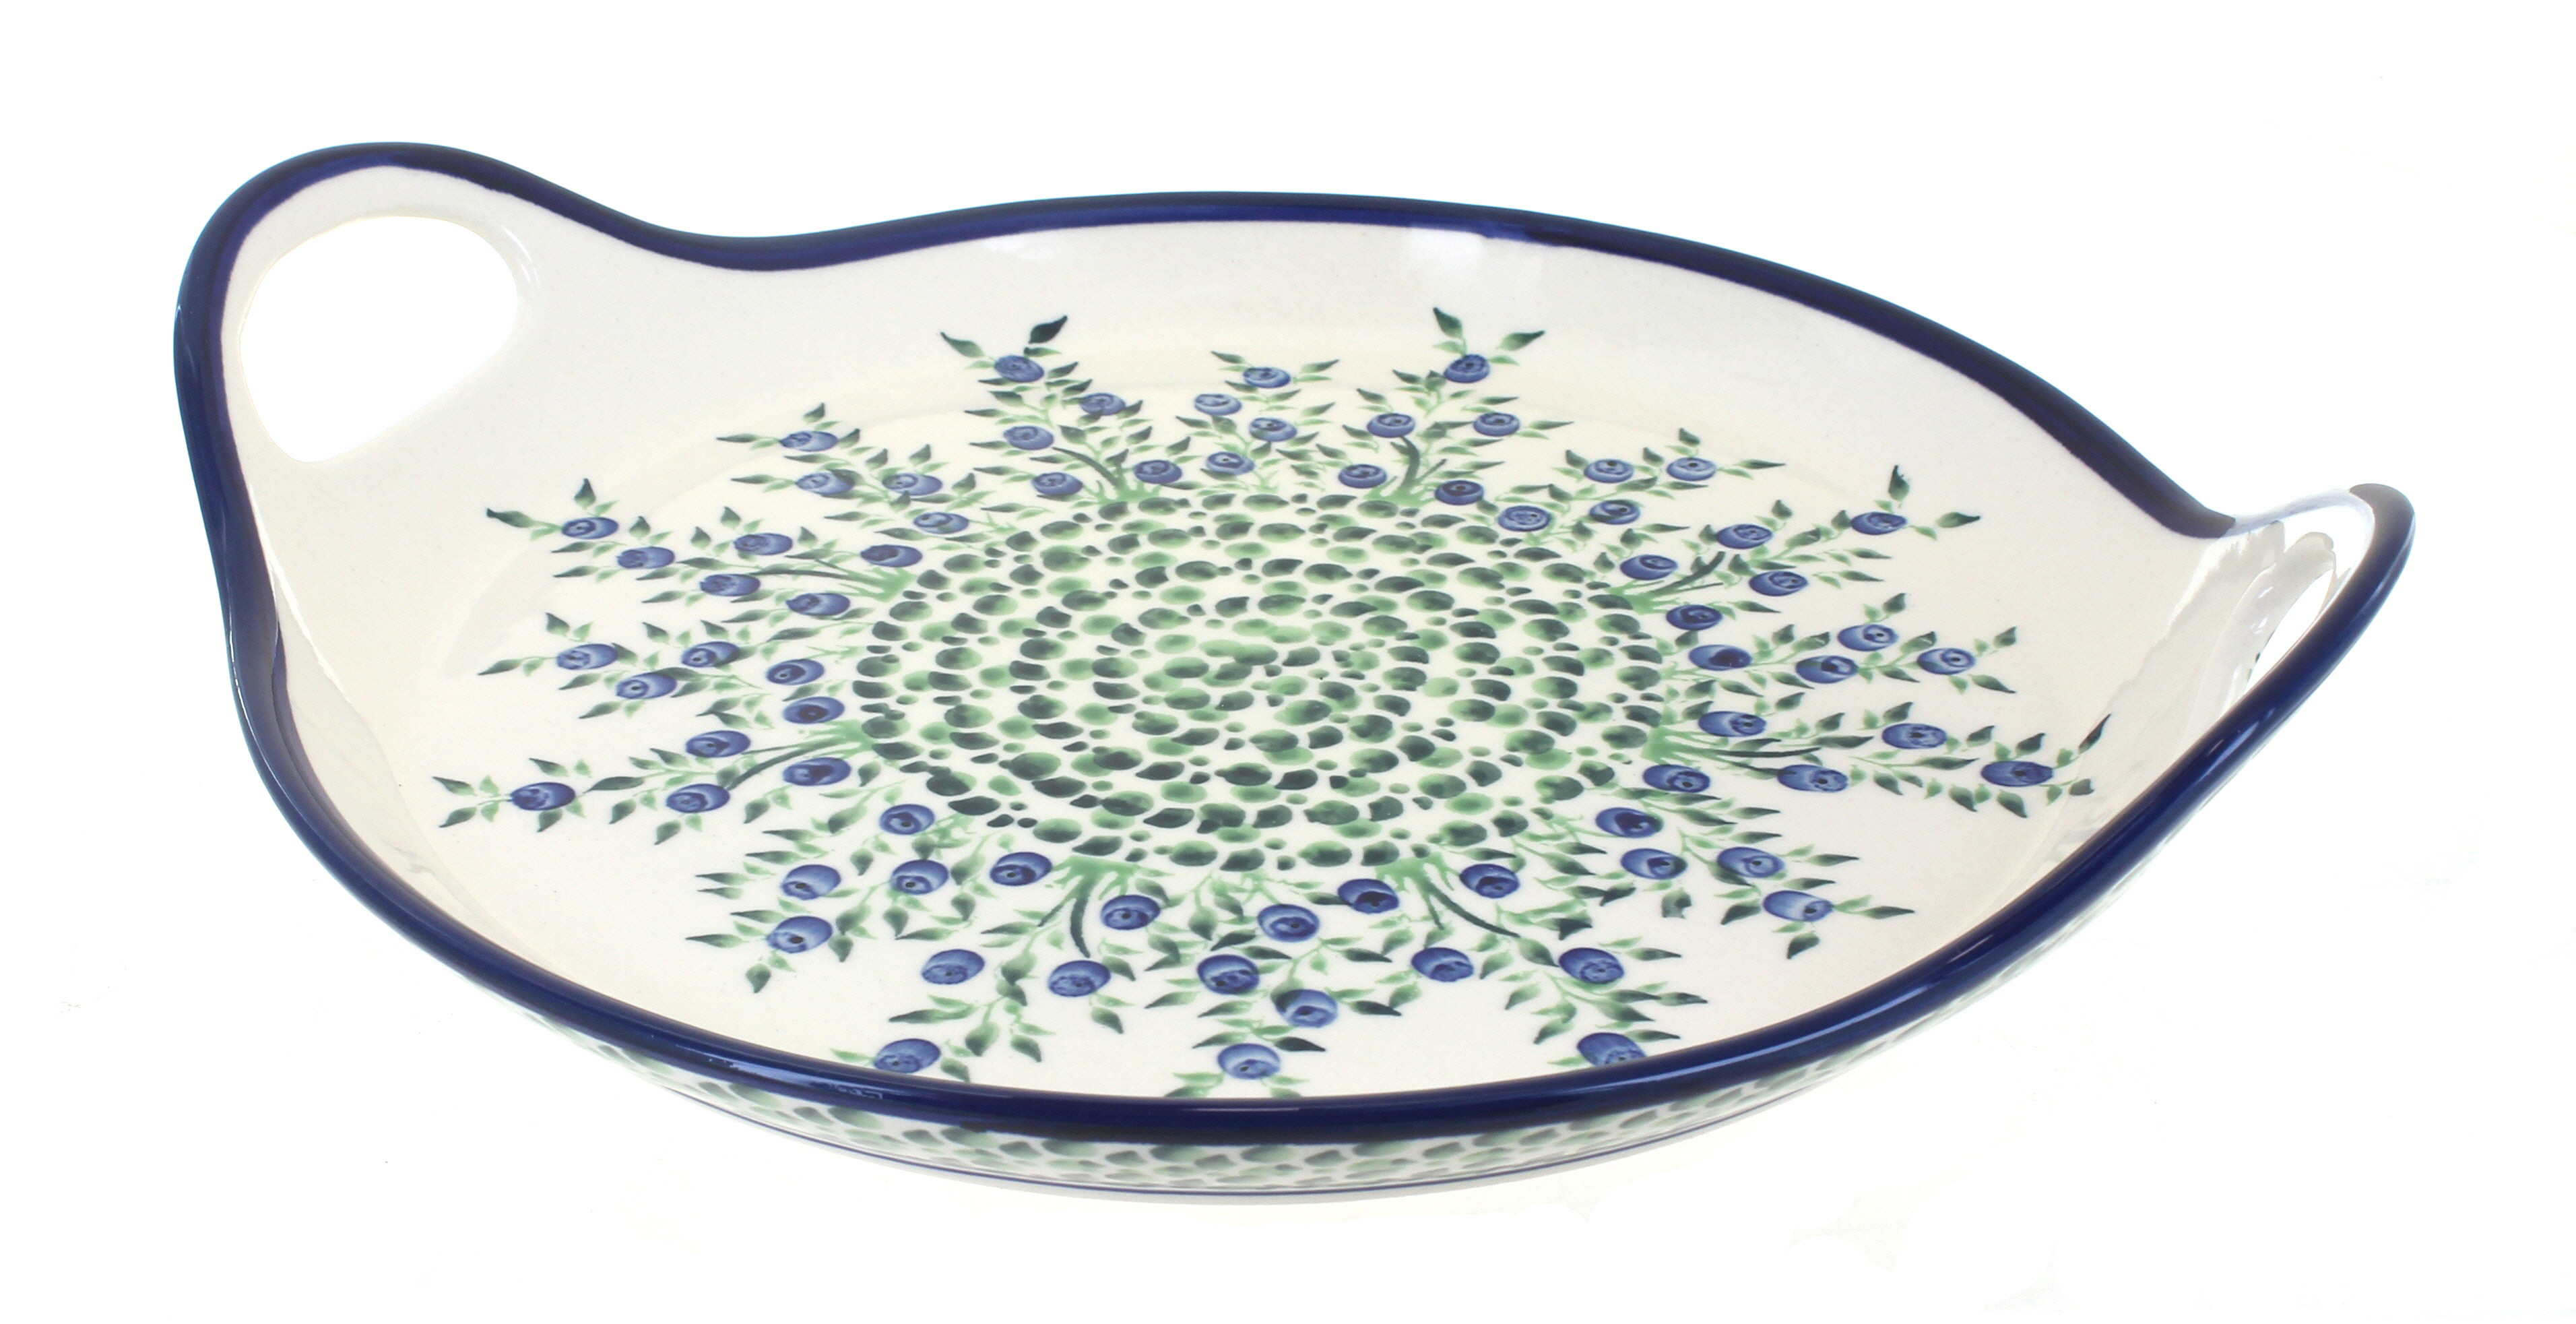 Blue Rose Polish Pottery Porcelain Vine Round Serving Tray With Handles